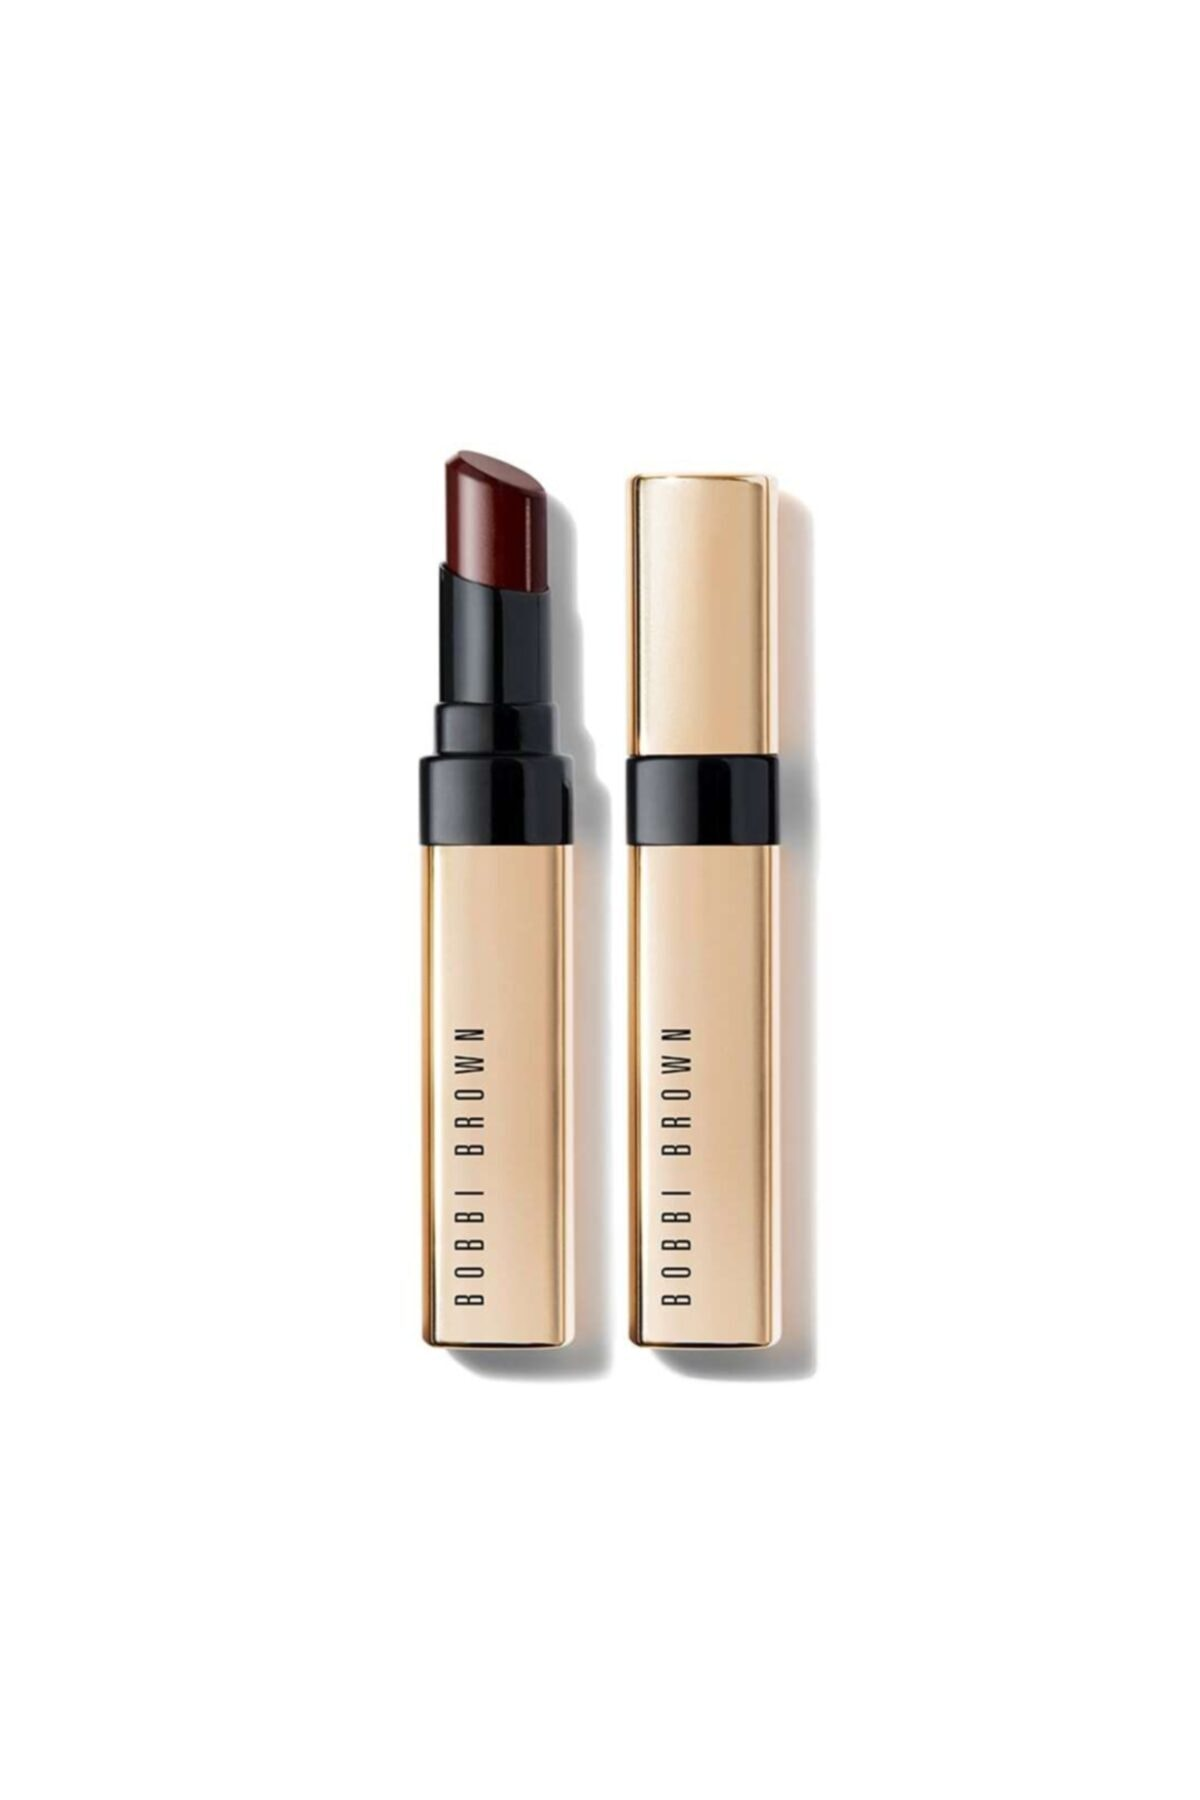 BOBBI BROWN Luxe Shine Intense Lipstick / Ruj 2